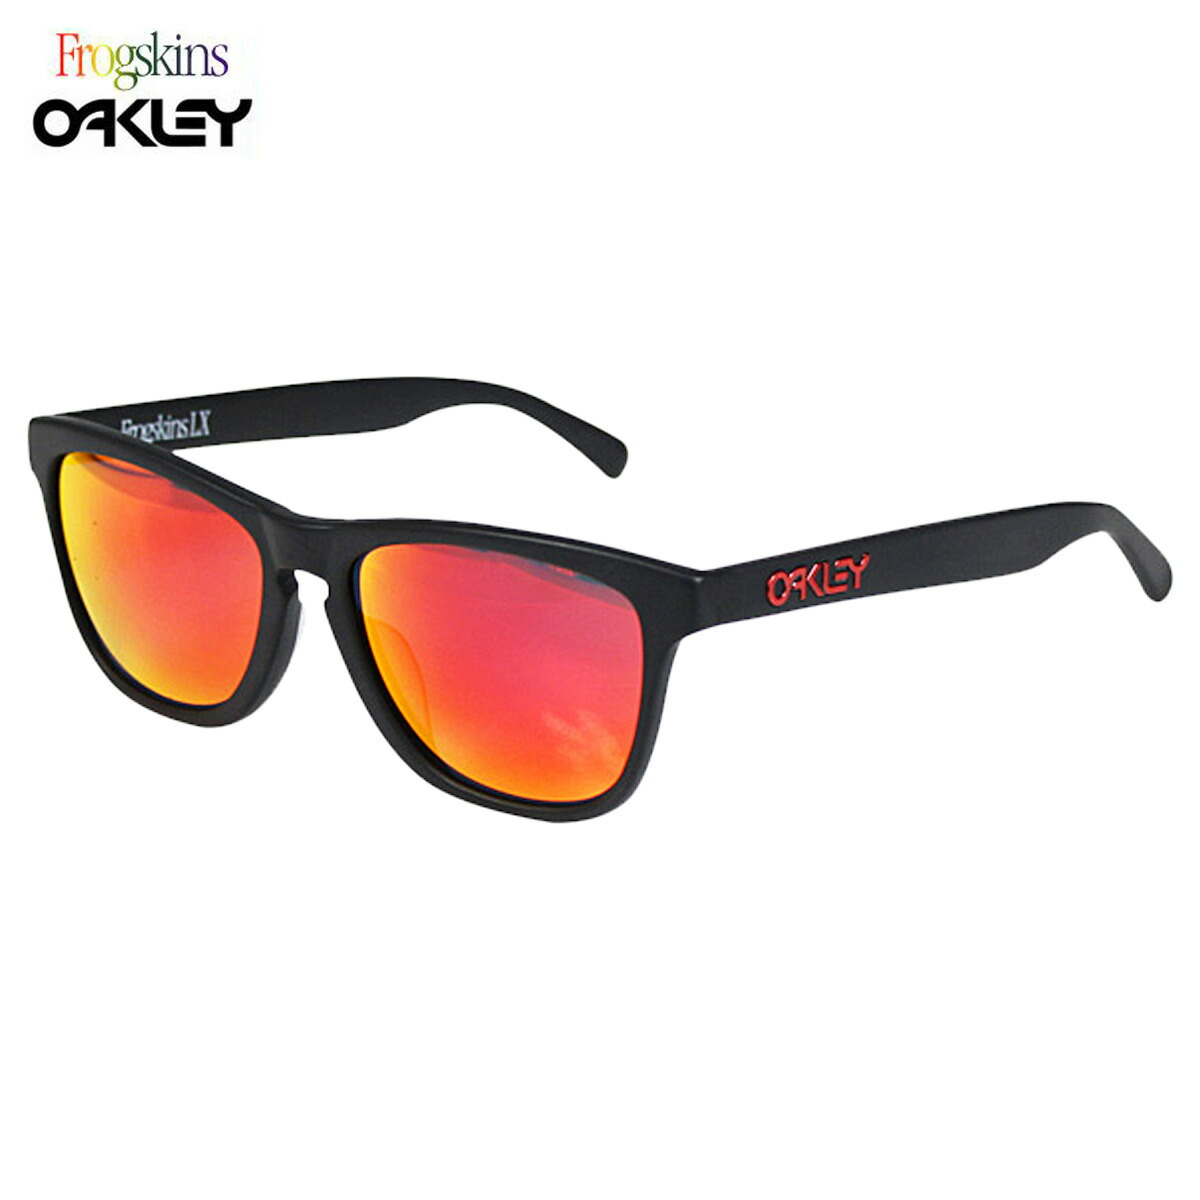 949f38ef003 Oakley Frogskins Lx Lenses « One More Soul